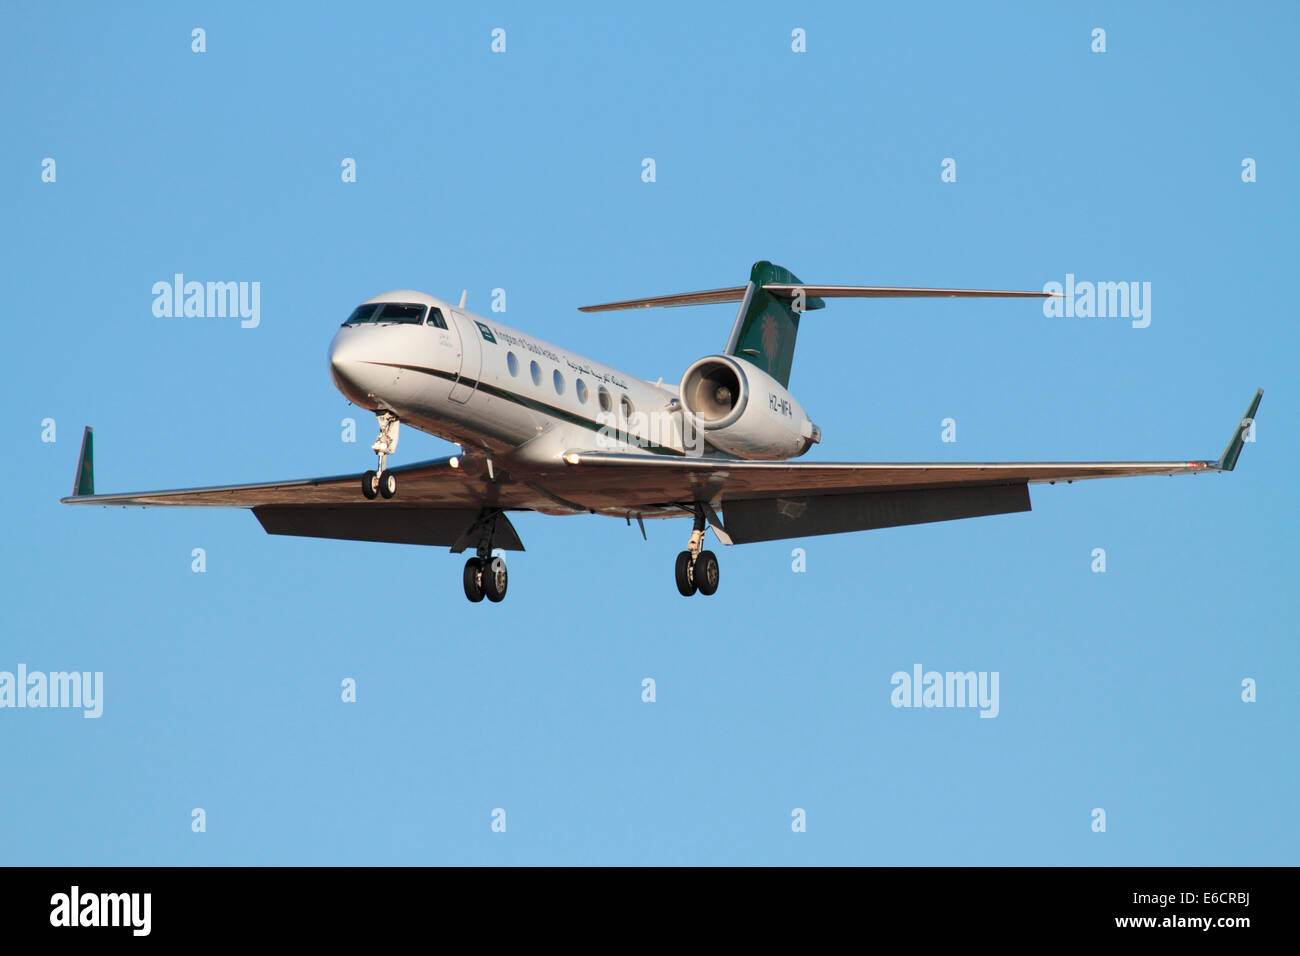 Gulfstream IV business jet used by the Saudi Arabian government in an official VIP transport role - Stock Image